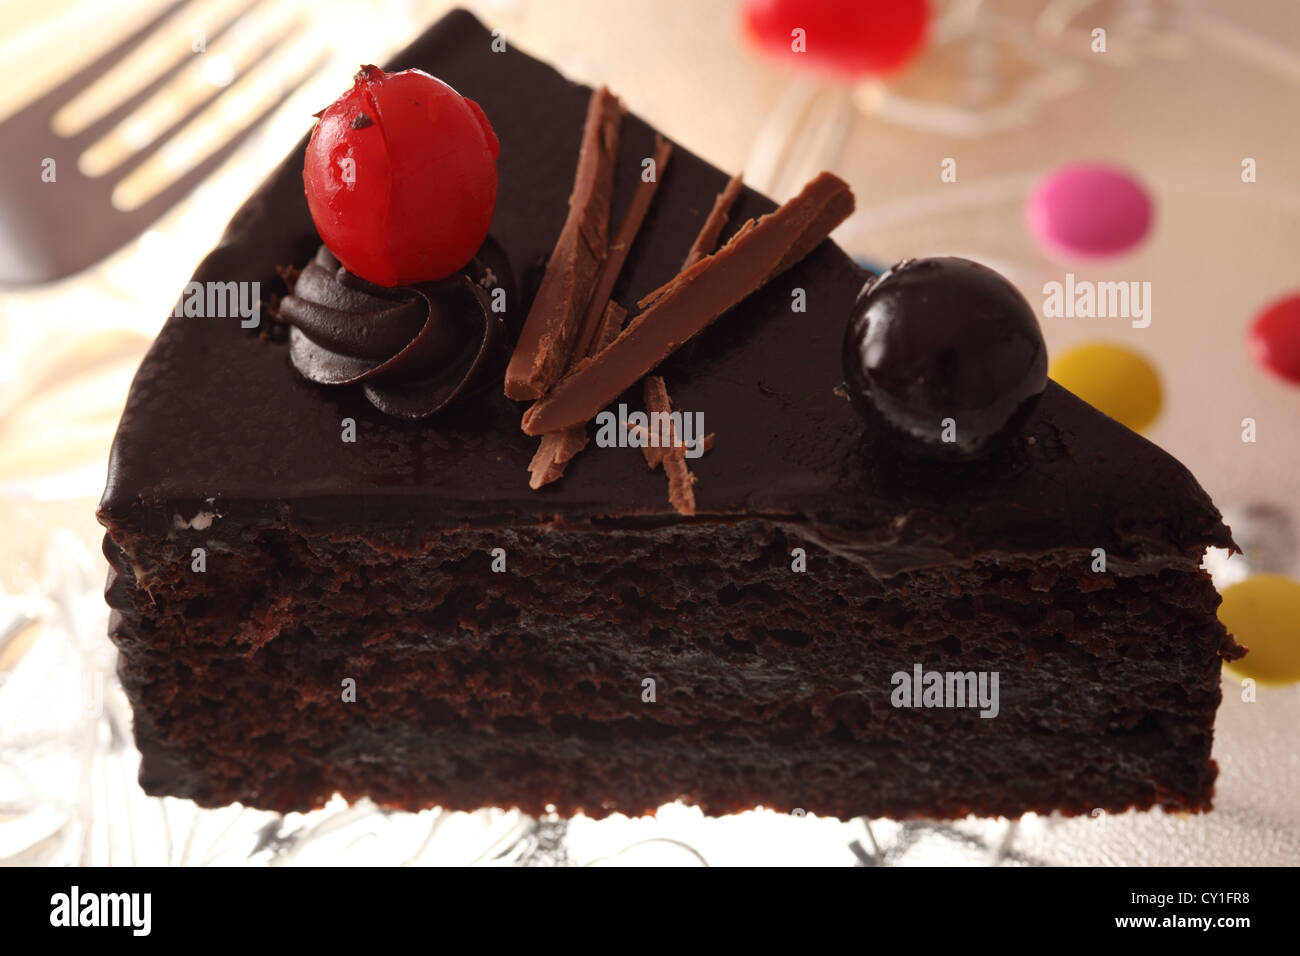 Black Forest Cake Consists Of Several Layers Chocolate With Whipped Cream Between Each Layer And Cherry On Top